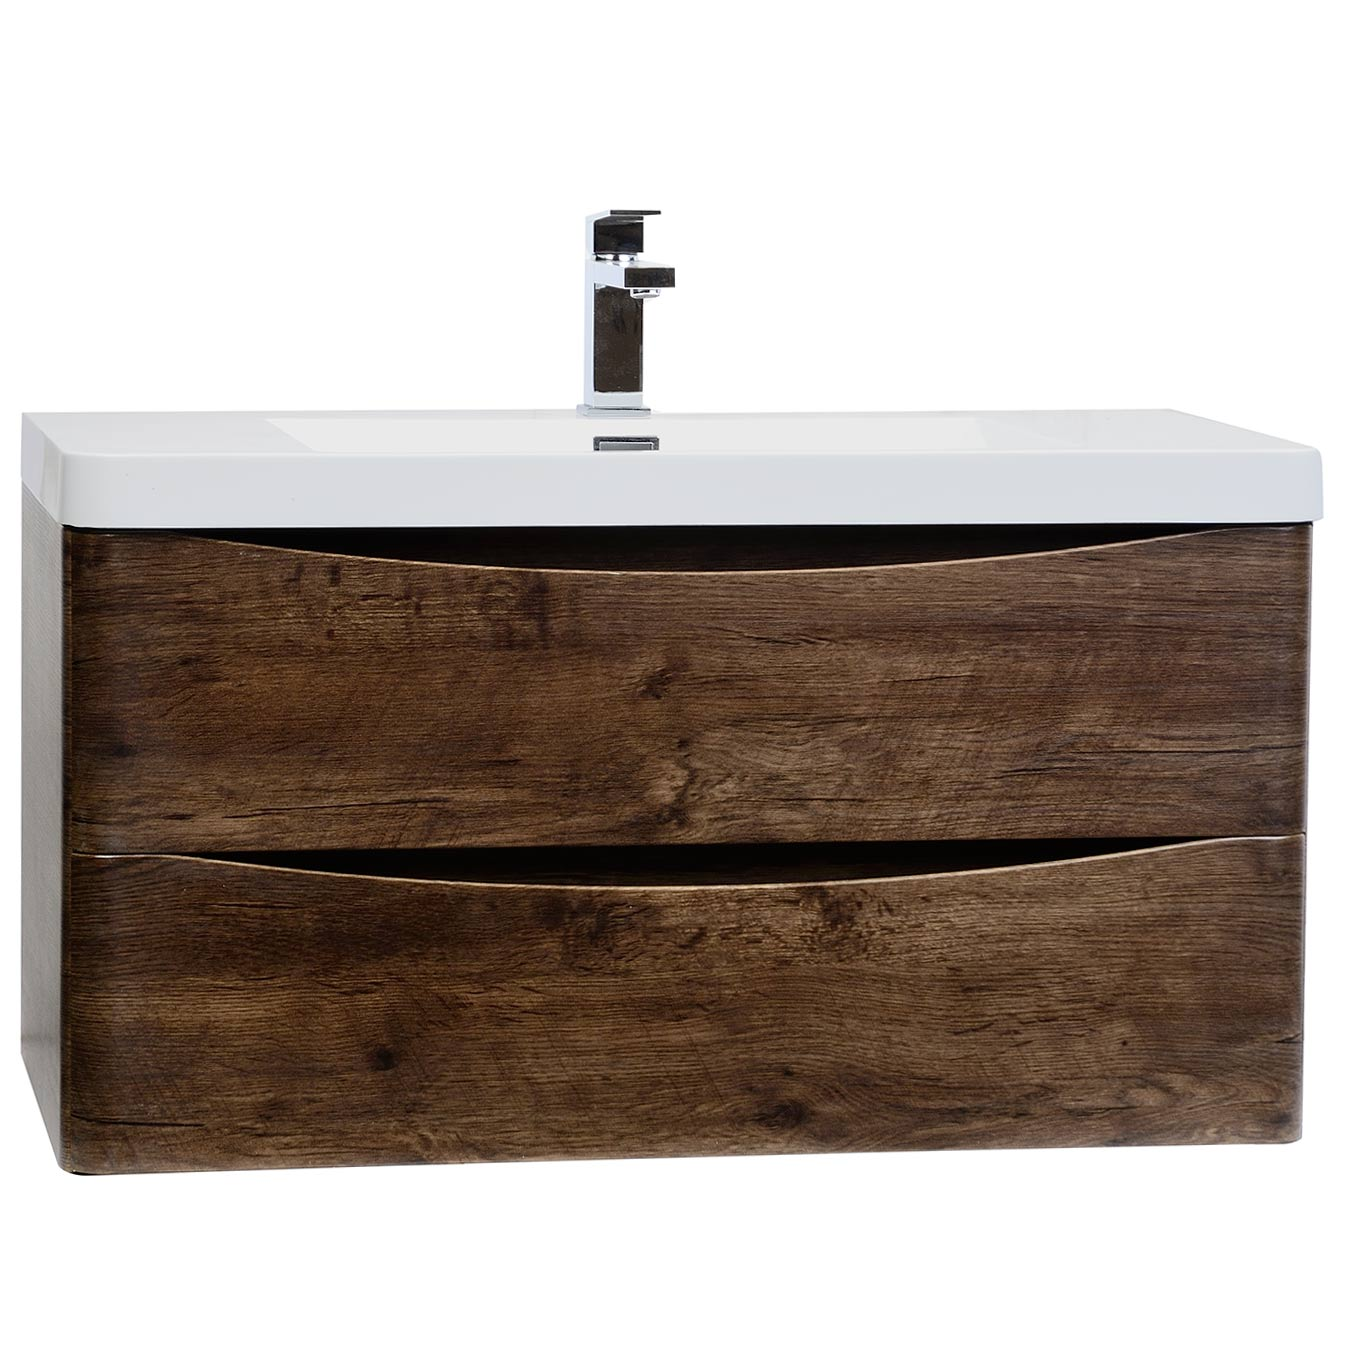 Made to order bathroom cabinets - Buy Merida 35 5 Quot Wall Mount Bathroom Vanity In Rosewood Tn